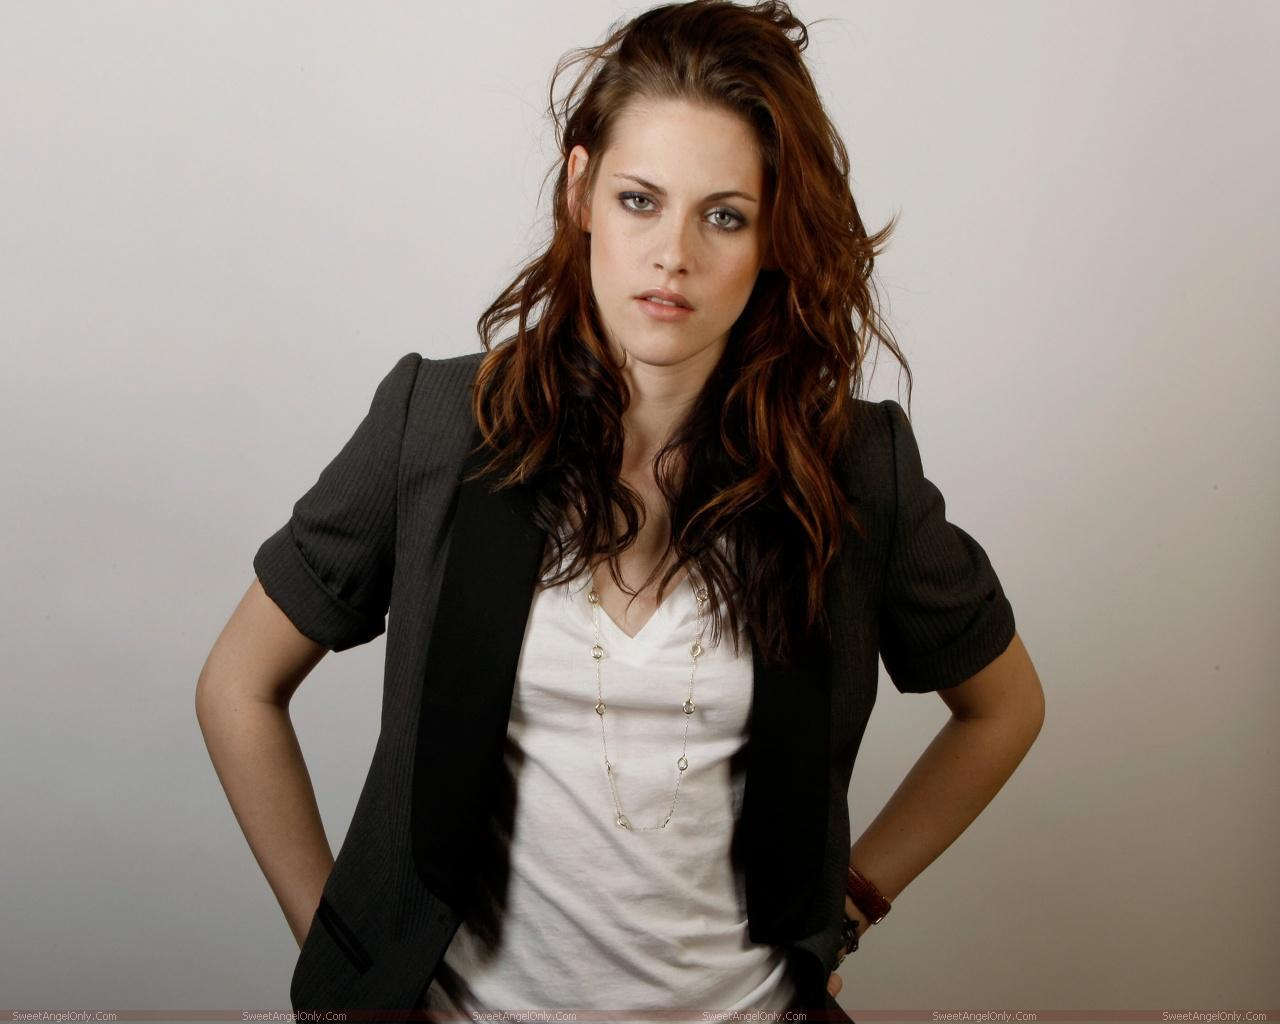 http://4.bp.blogspot.com/-TdSMpuCBbiI/TX4h6C2XjrI/AAAAAAAAFmM/6i9Krcux_Q8/s1600/kristen_stewart_hollywood_hot_actress_wallpaper_sweetangelonly_24.jpg